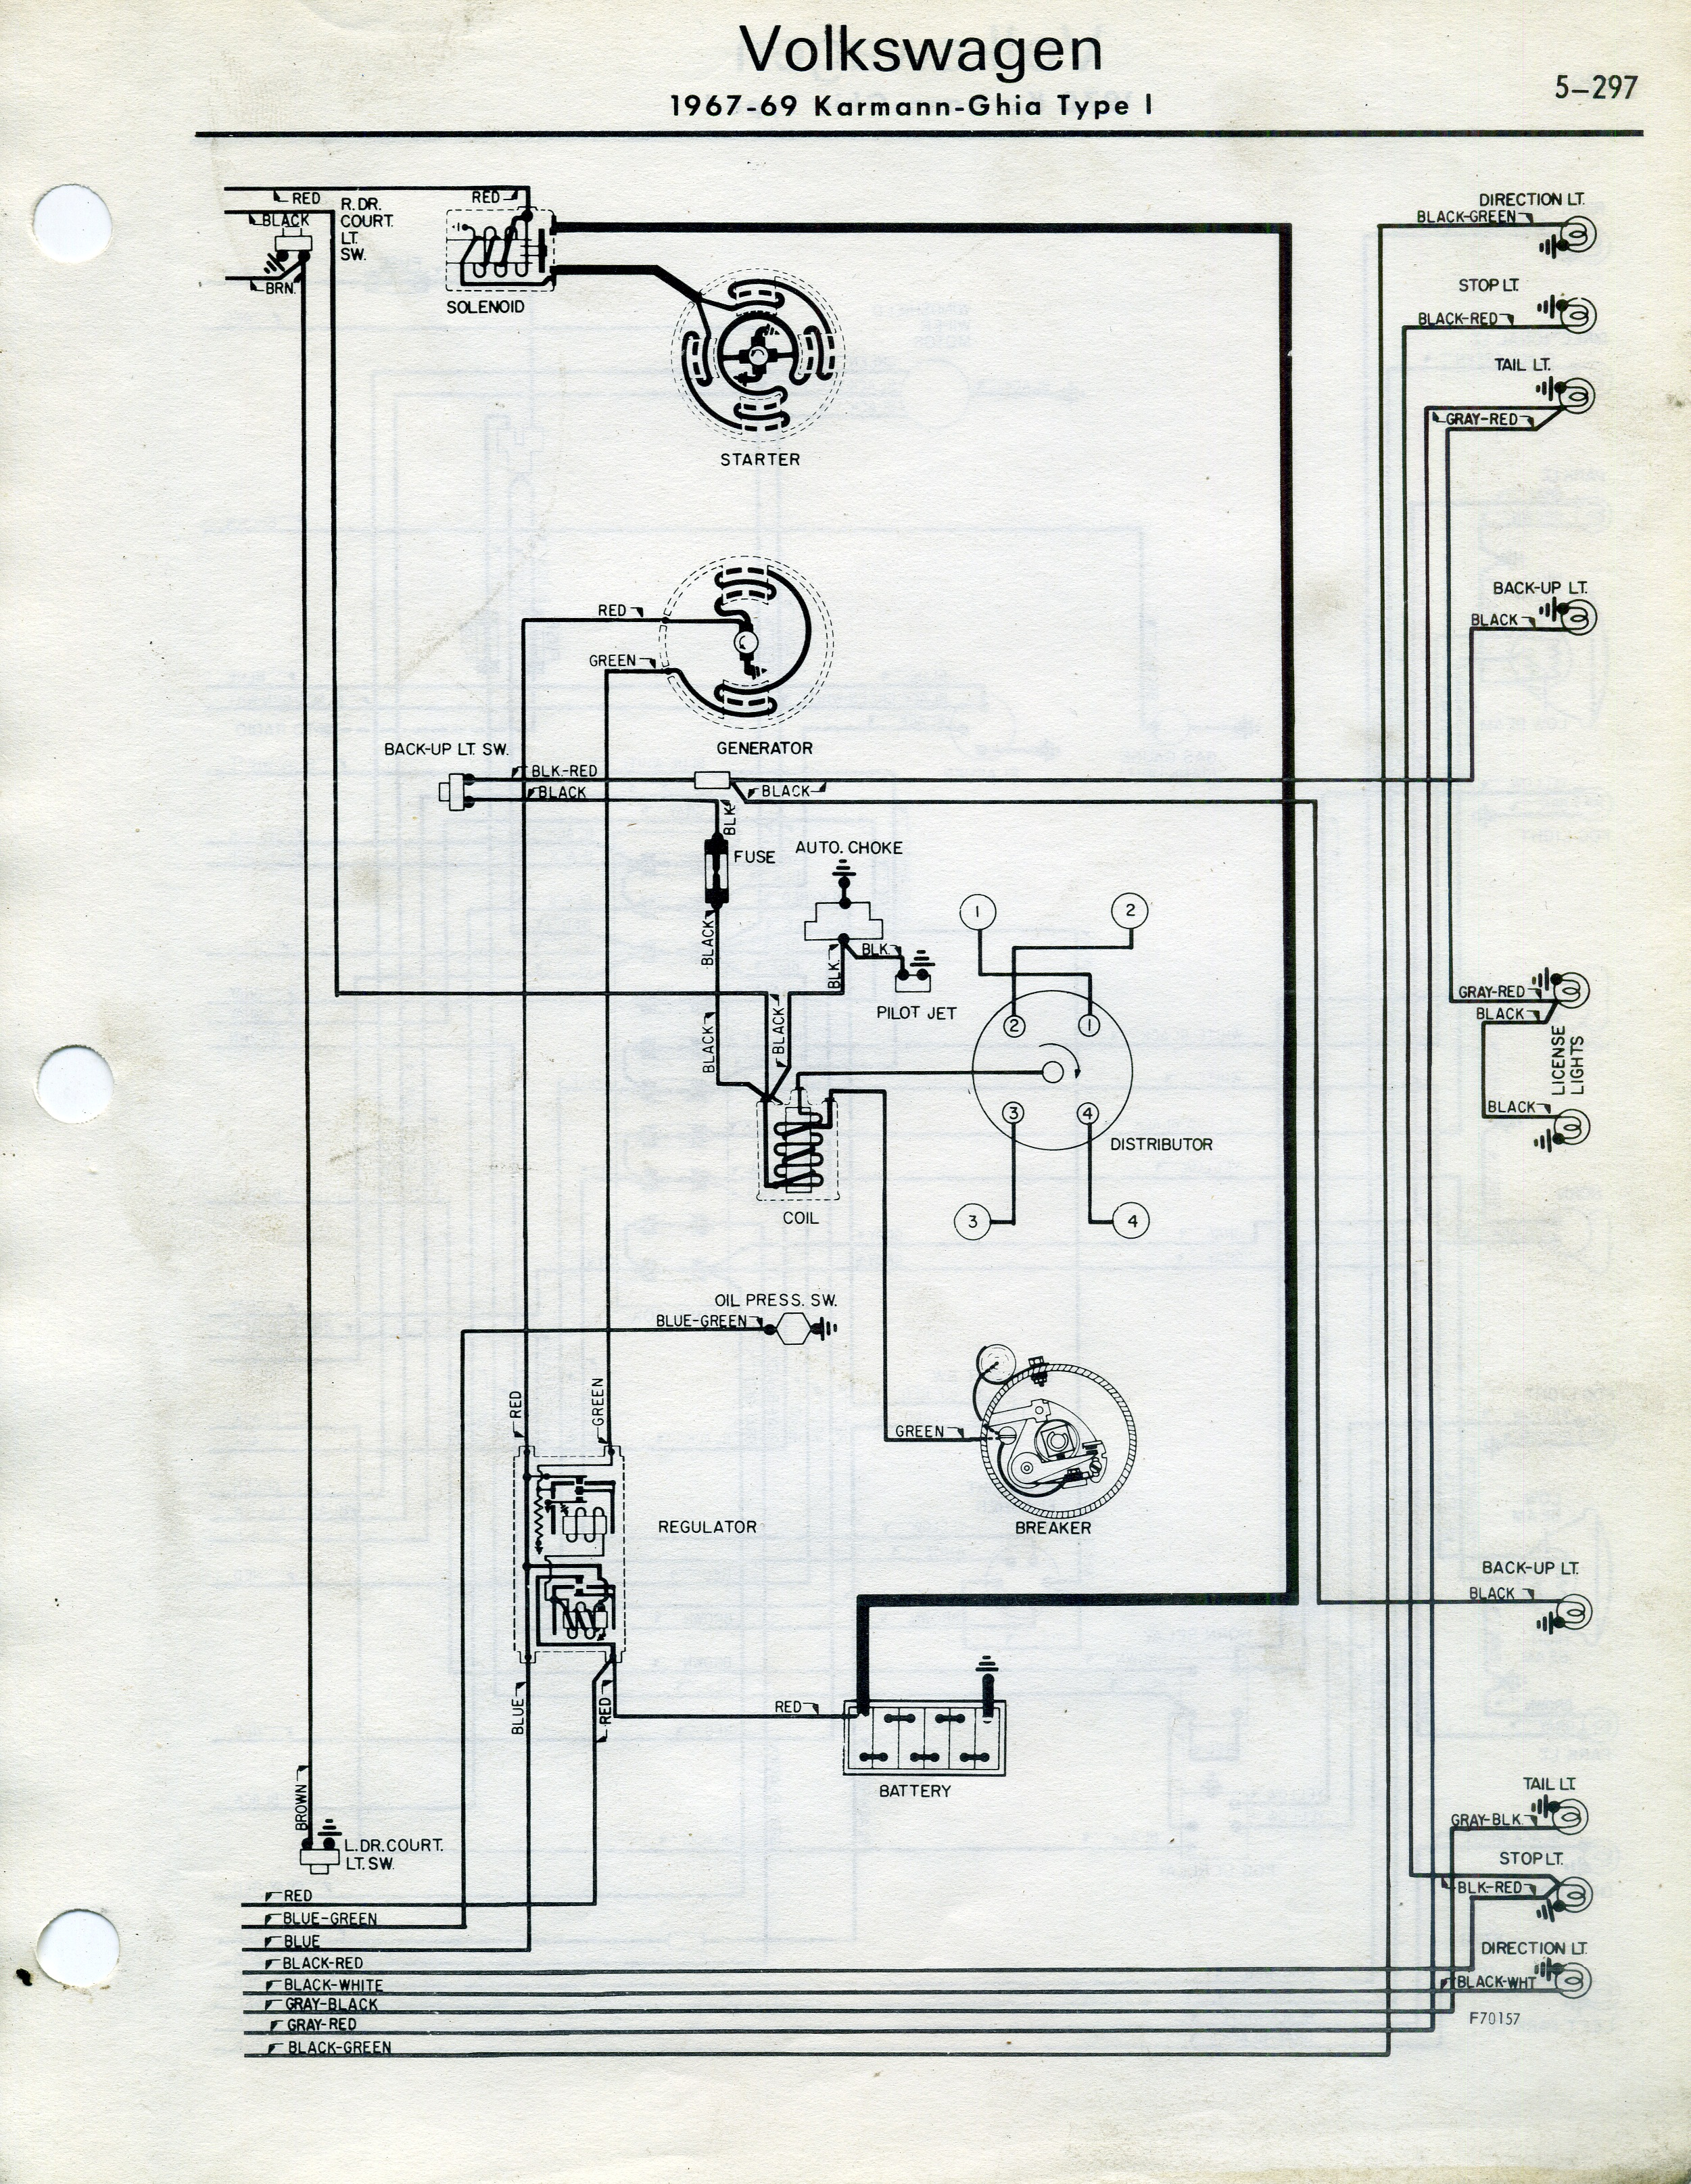 Automotive Fuse Diagram Thesamba Com Karmann Ghia Wiring Diagrams